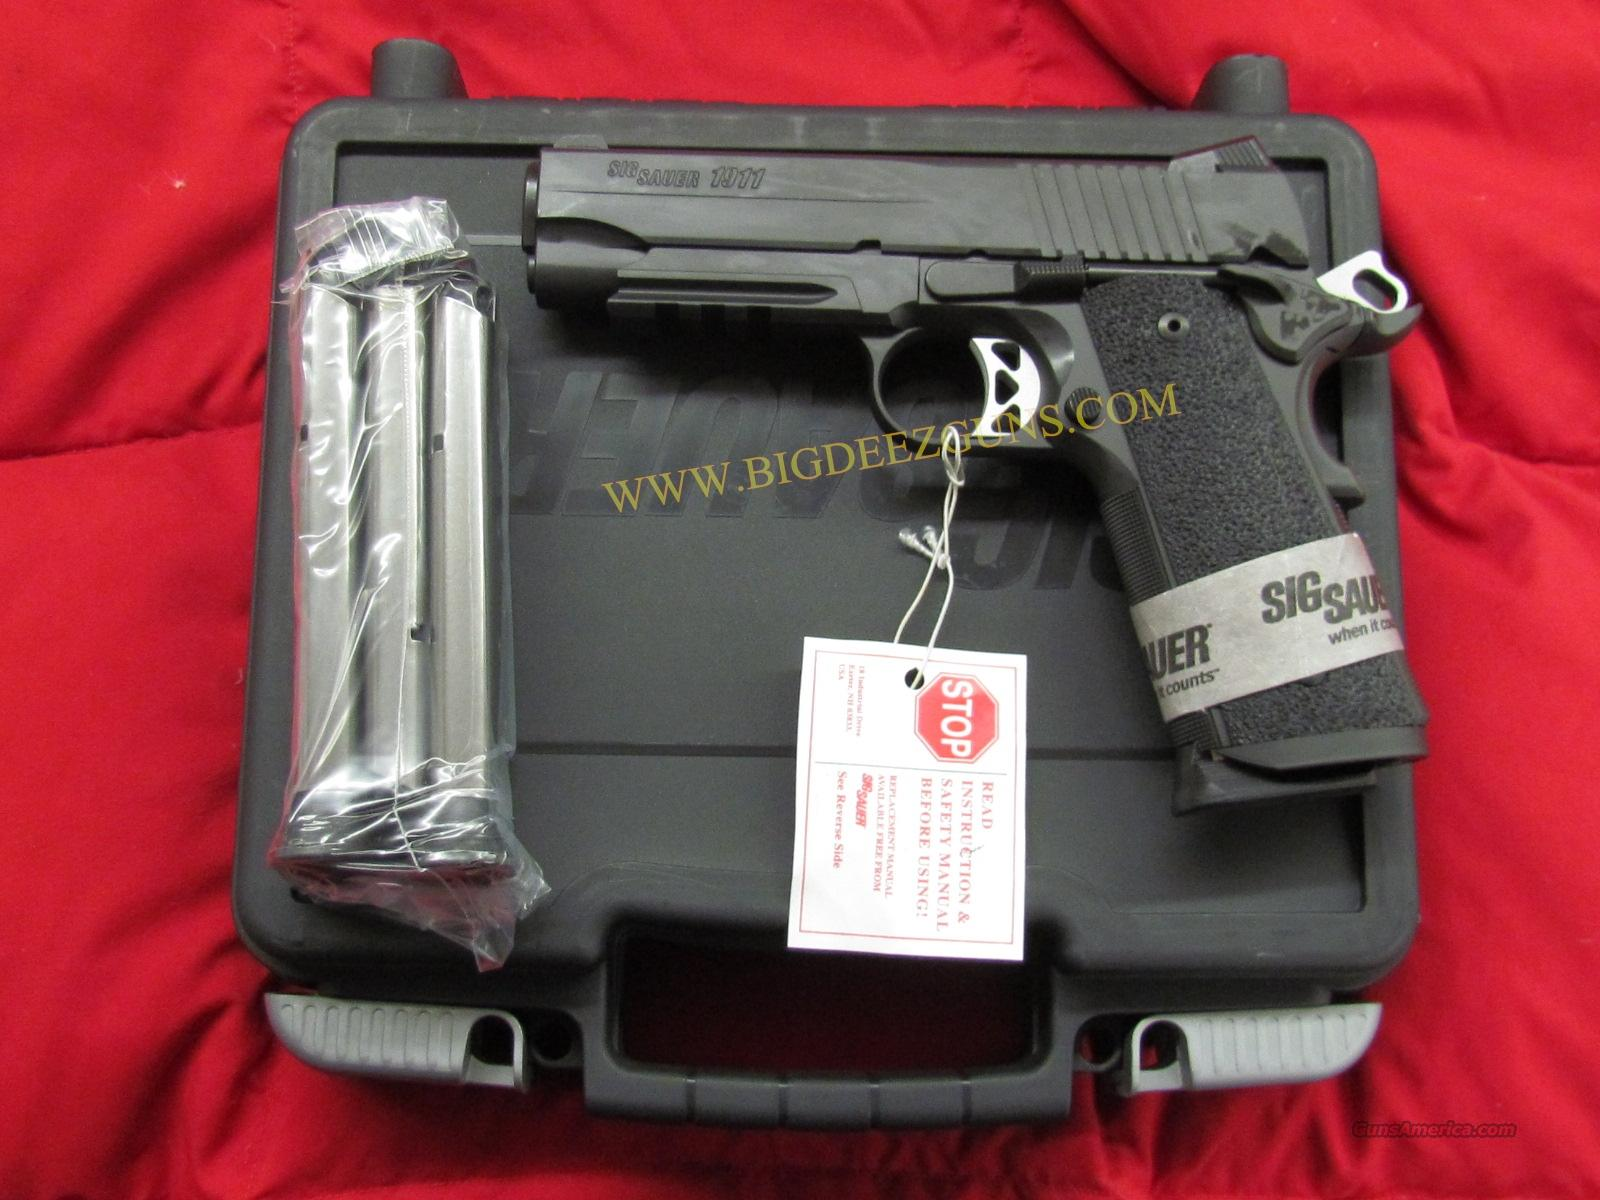 NEW FREE SHIPPING Sig Sauer 1911 CARRY TACTICAL OPERATIONS TACOPS 8 + 1 45 ACP 4 Magazines 1911CAR-45-TACOPS  Guns > Pistols > Sig - Sauer/Sigarms Pistols > 1911